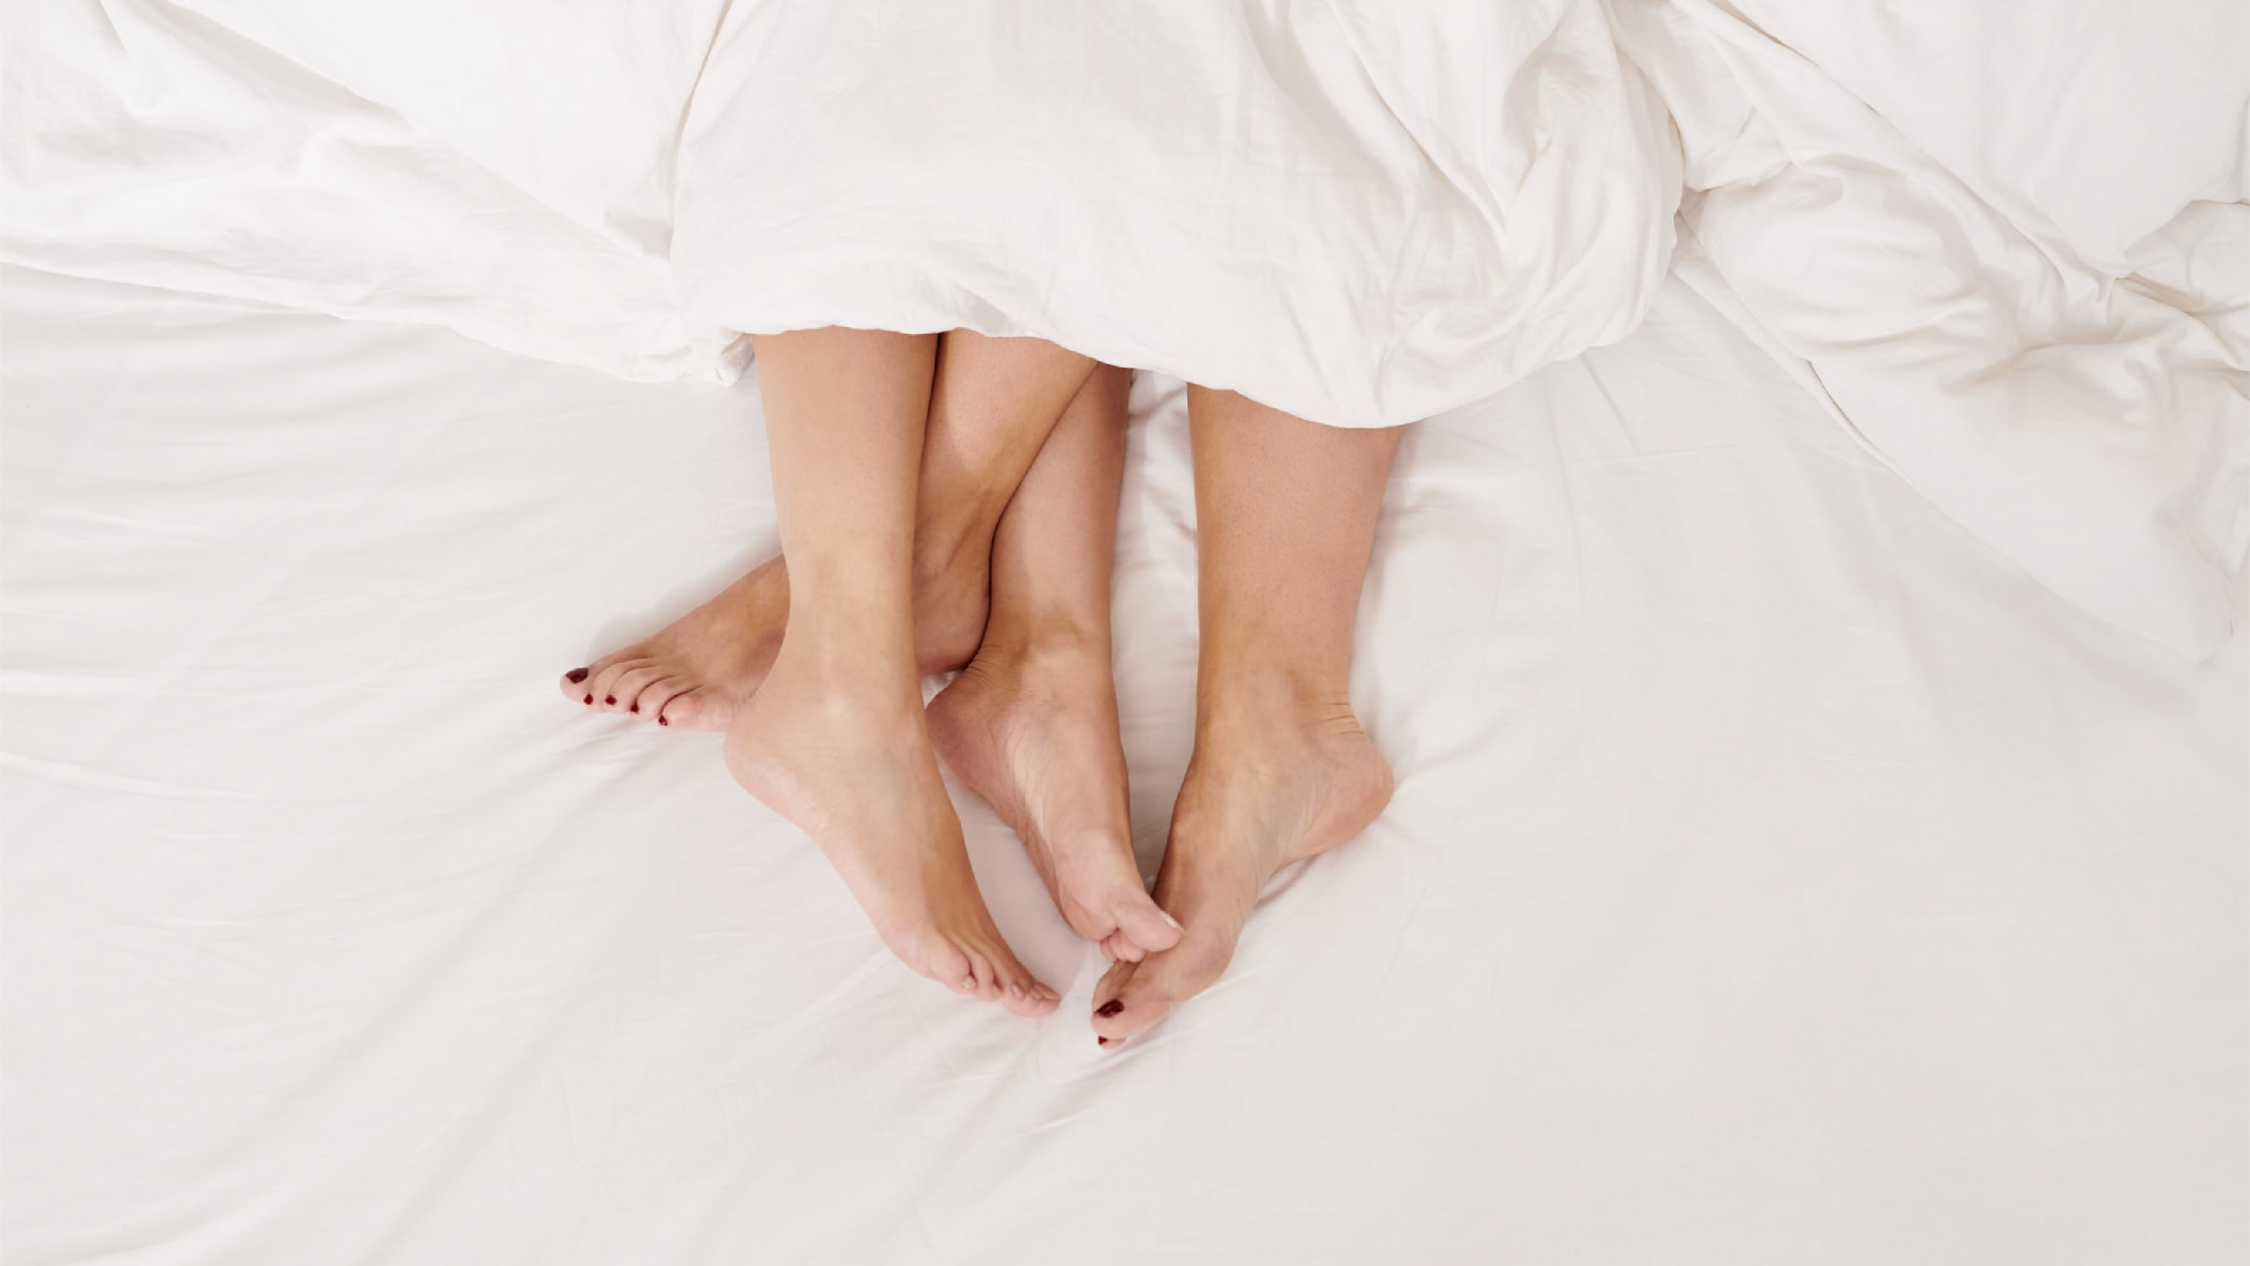 Two sets of feet are intertwined and poking out from a blanket on white sheets.